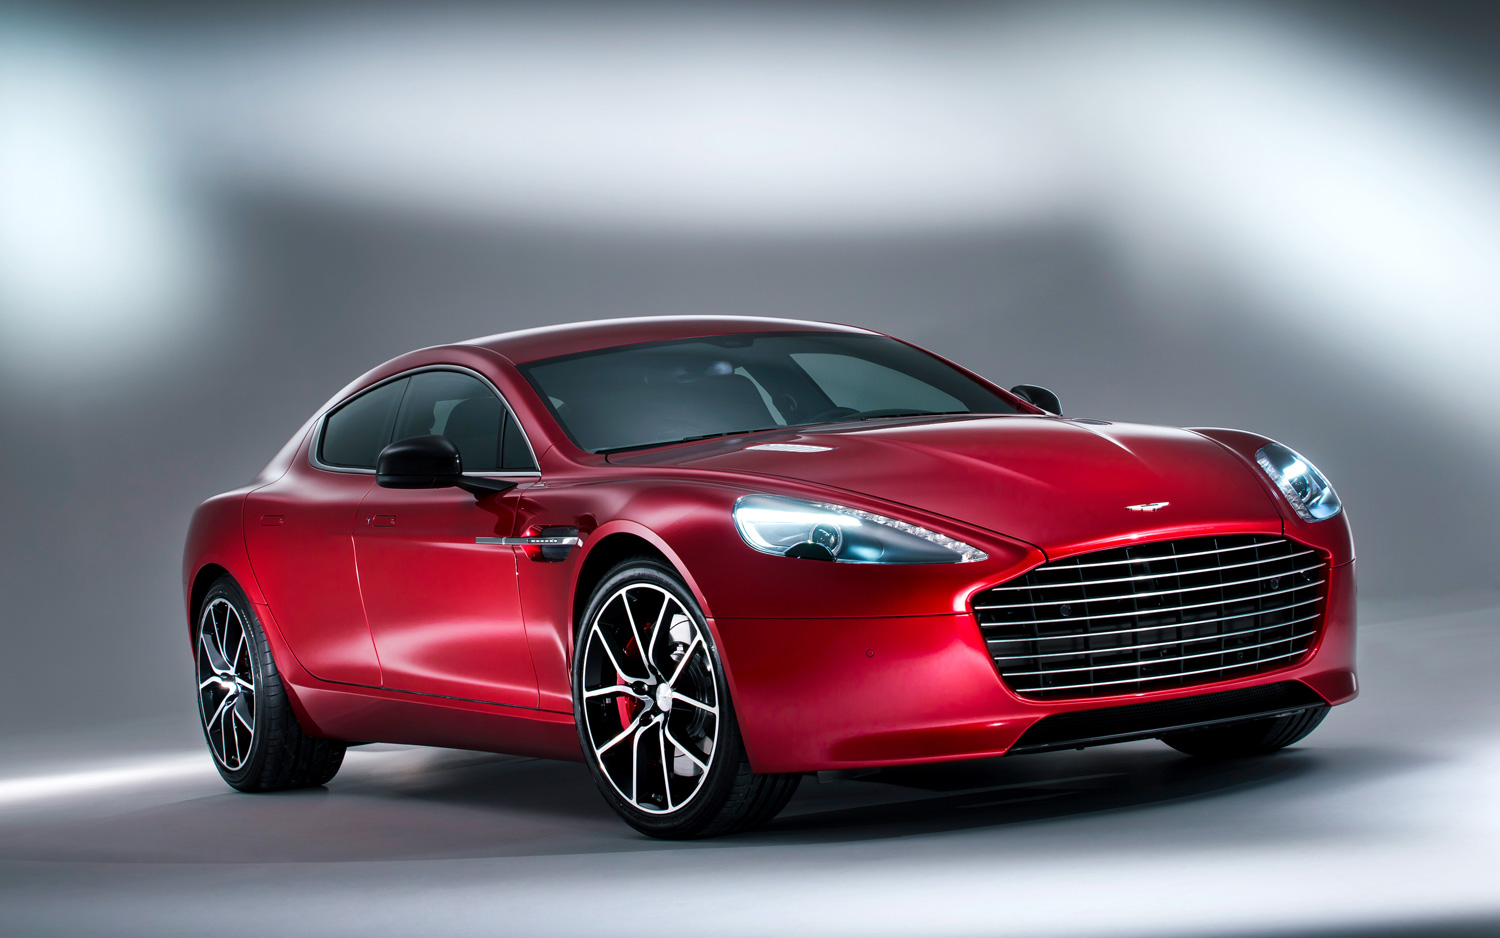 Aston Martin Rapide S Wallpaper Free For Phone